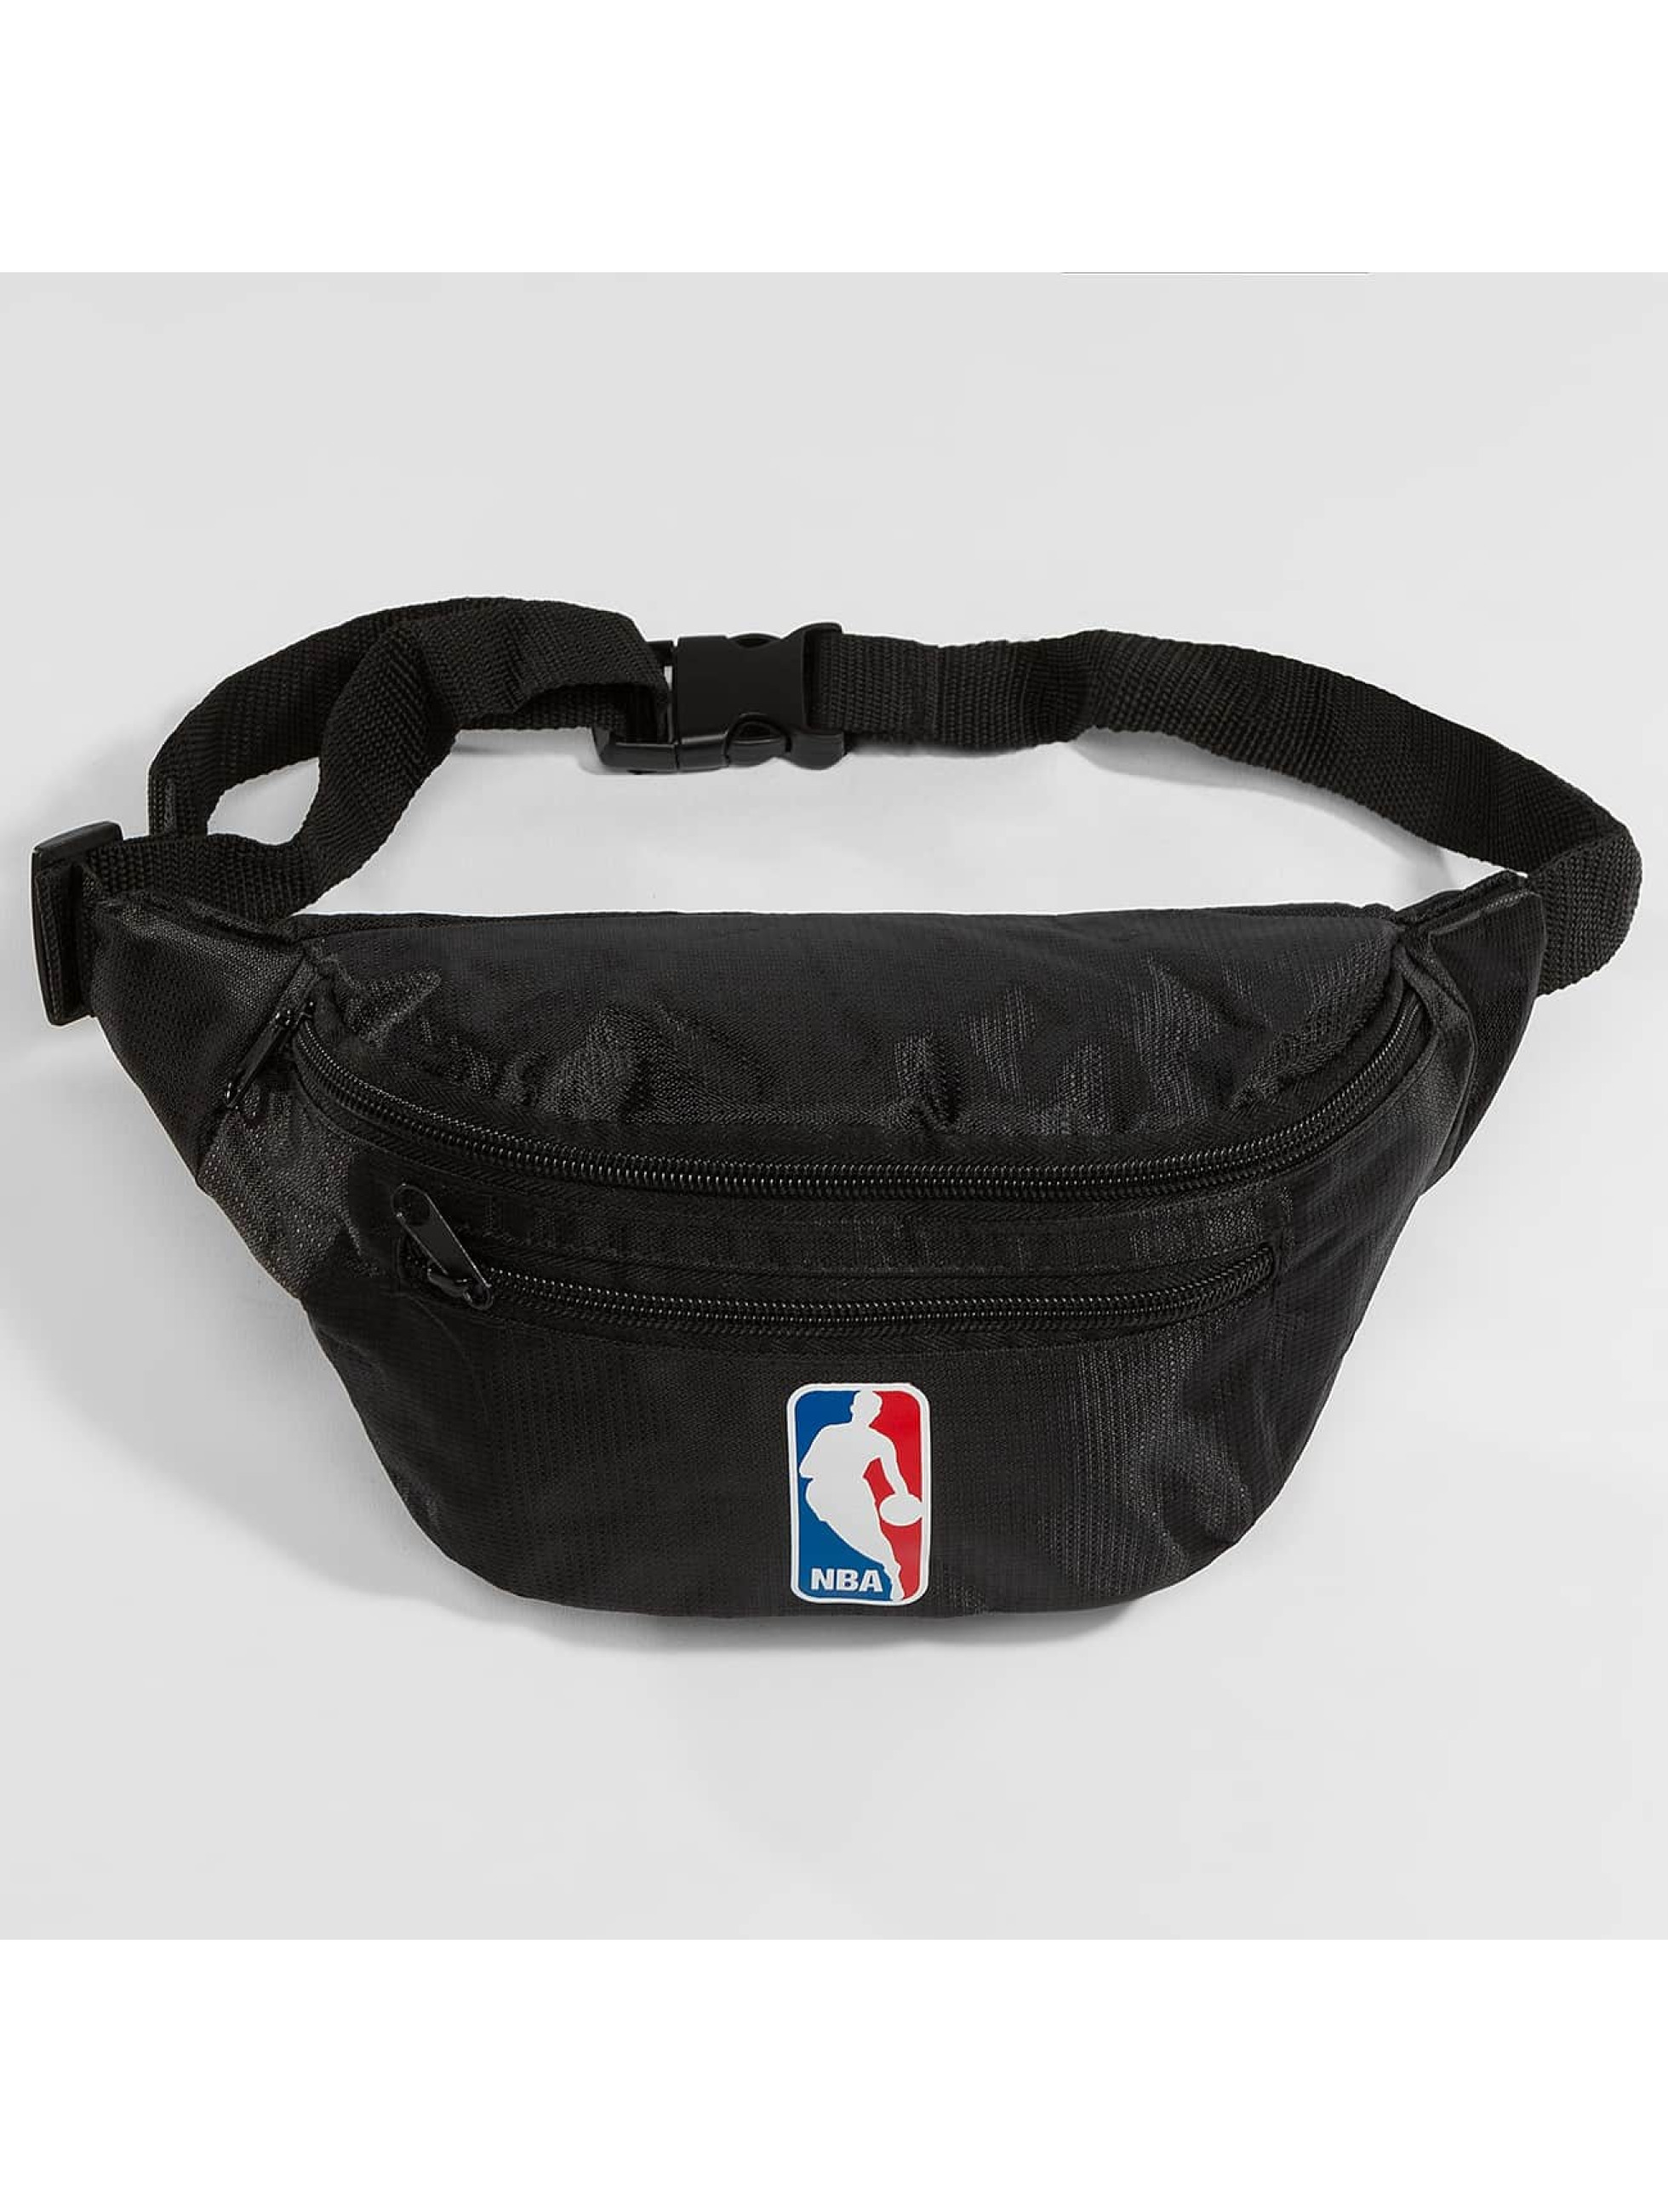 Forever Collectibles Bag NBA Logo black